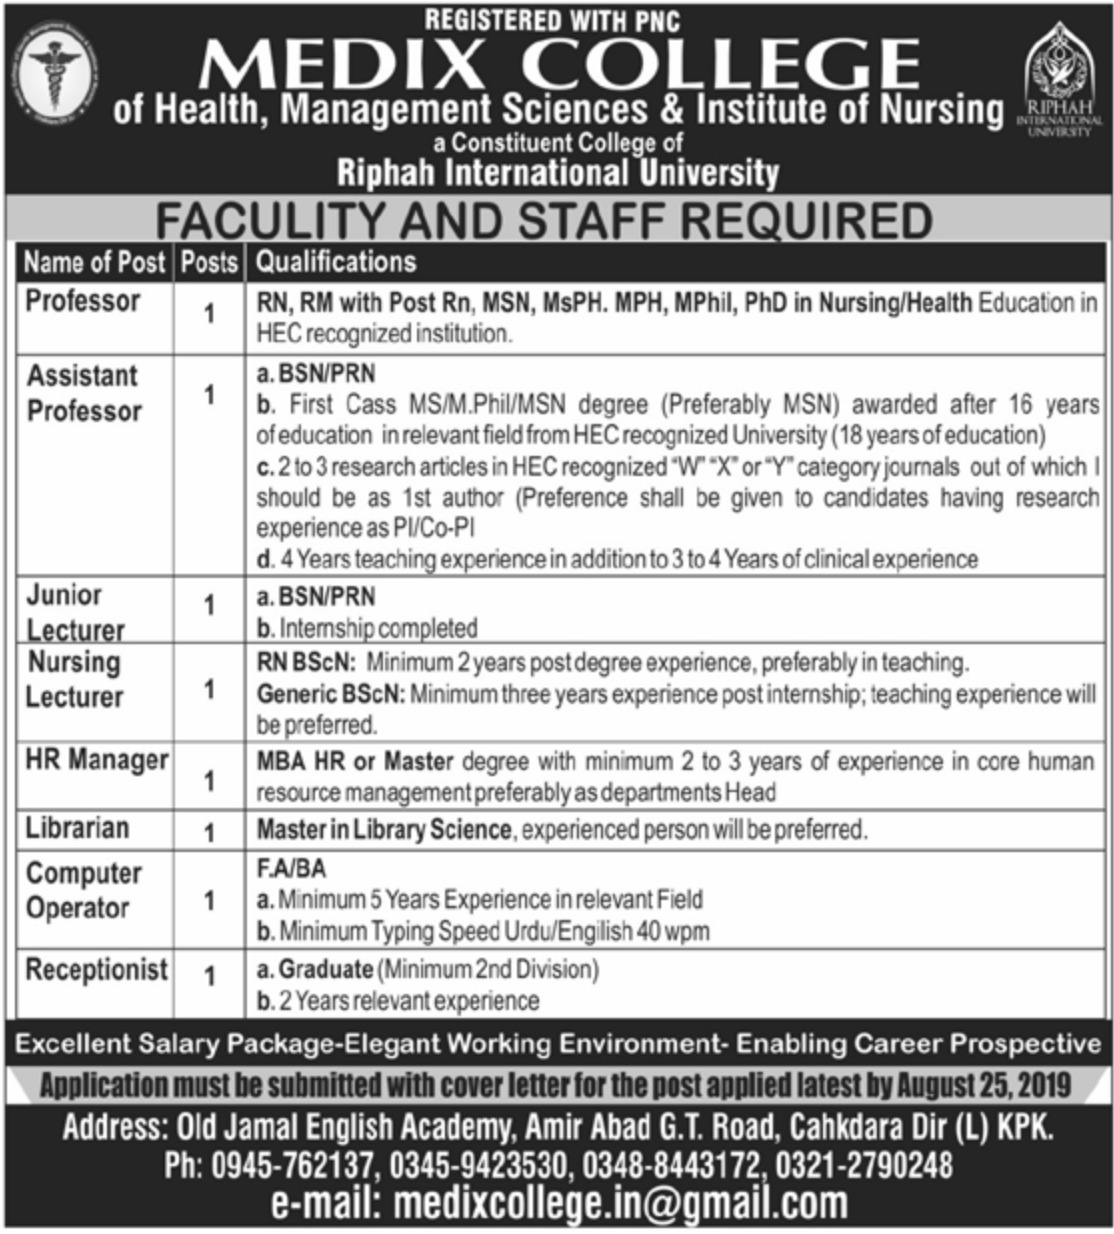 Medix College of Health Management Sciences & Institute of Nursing Chakdara Dir Jobs 2019 KPK